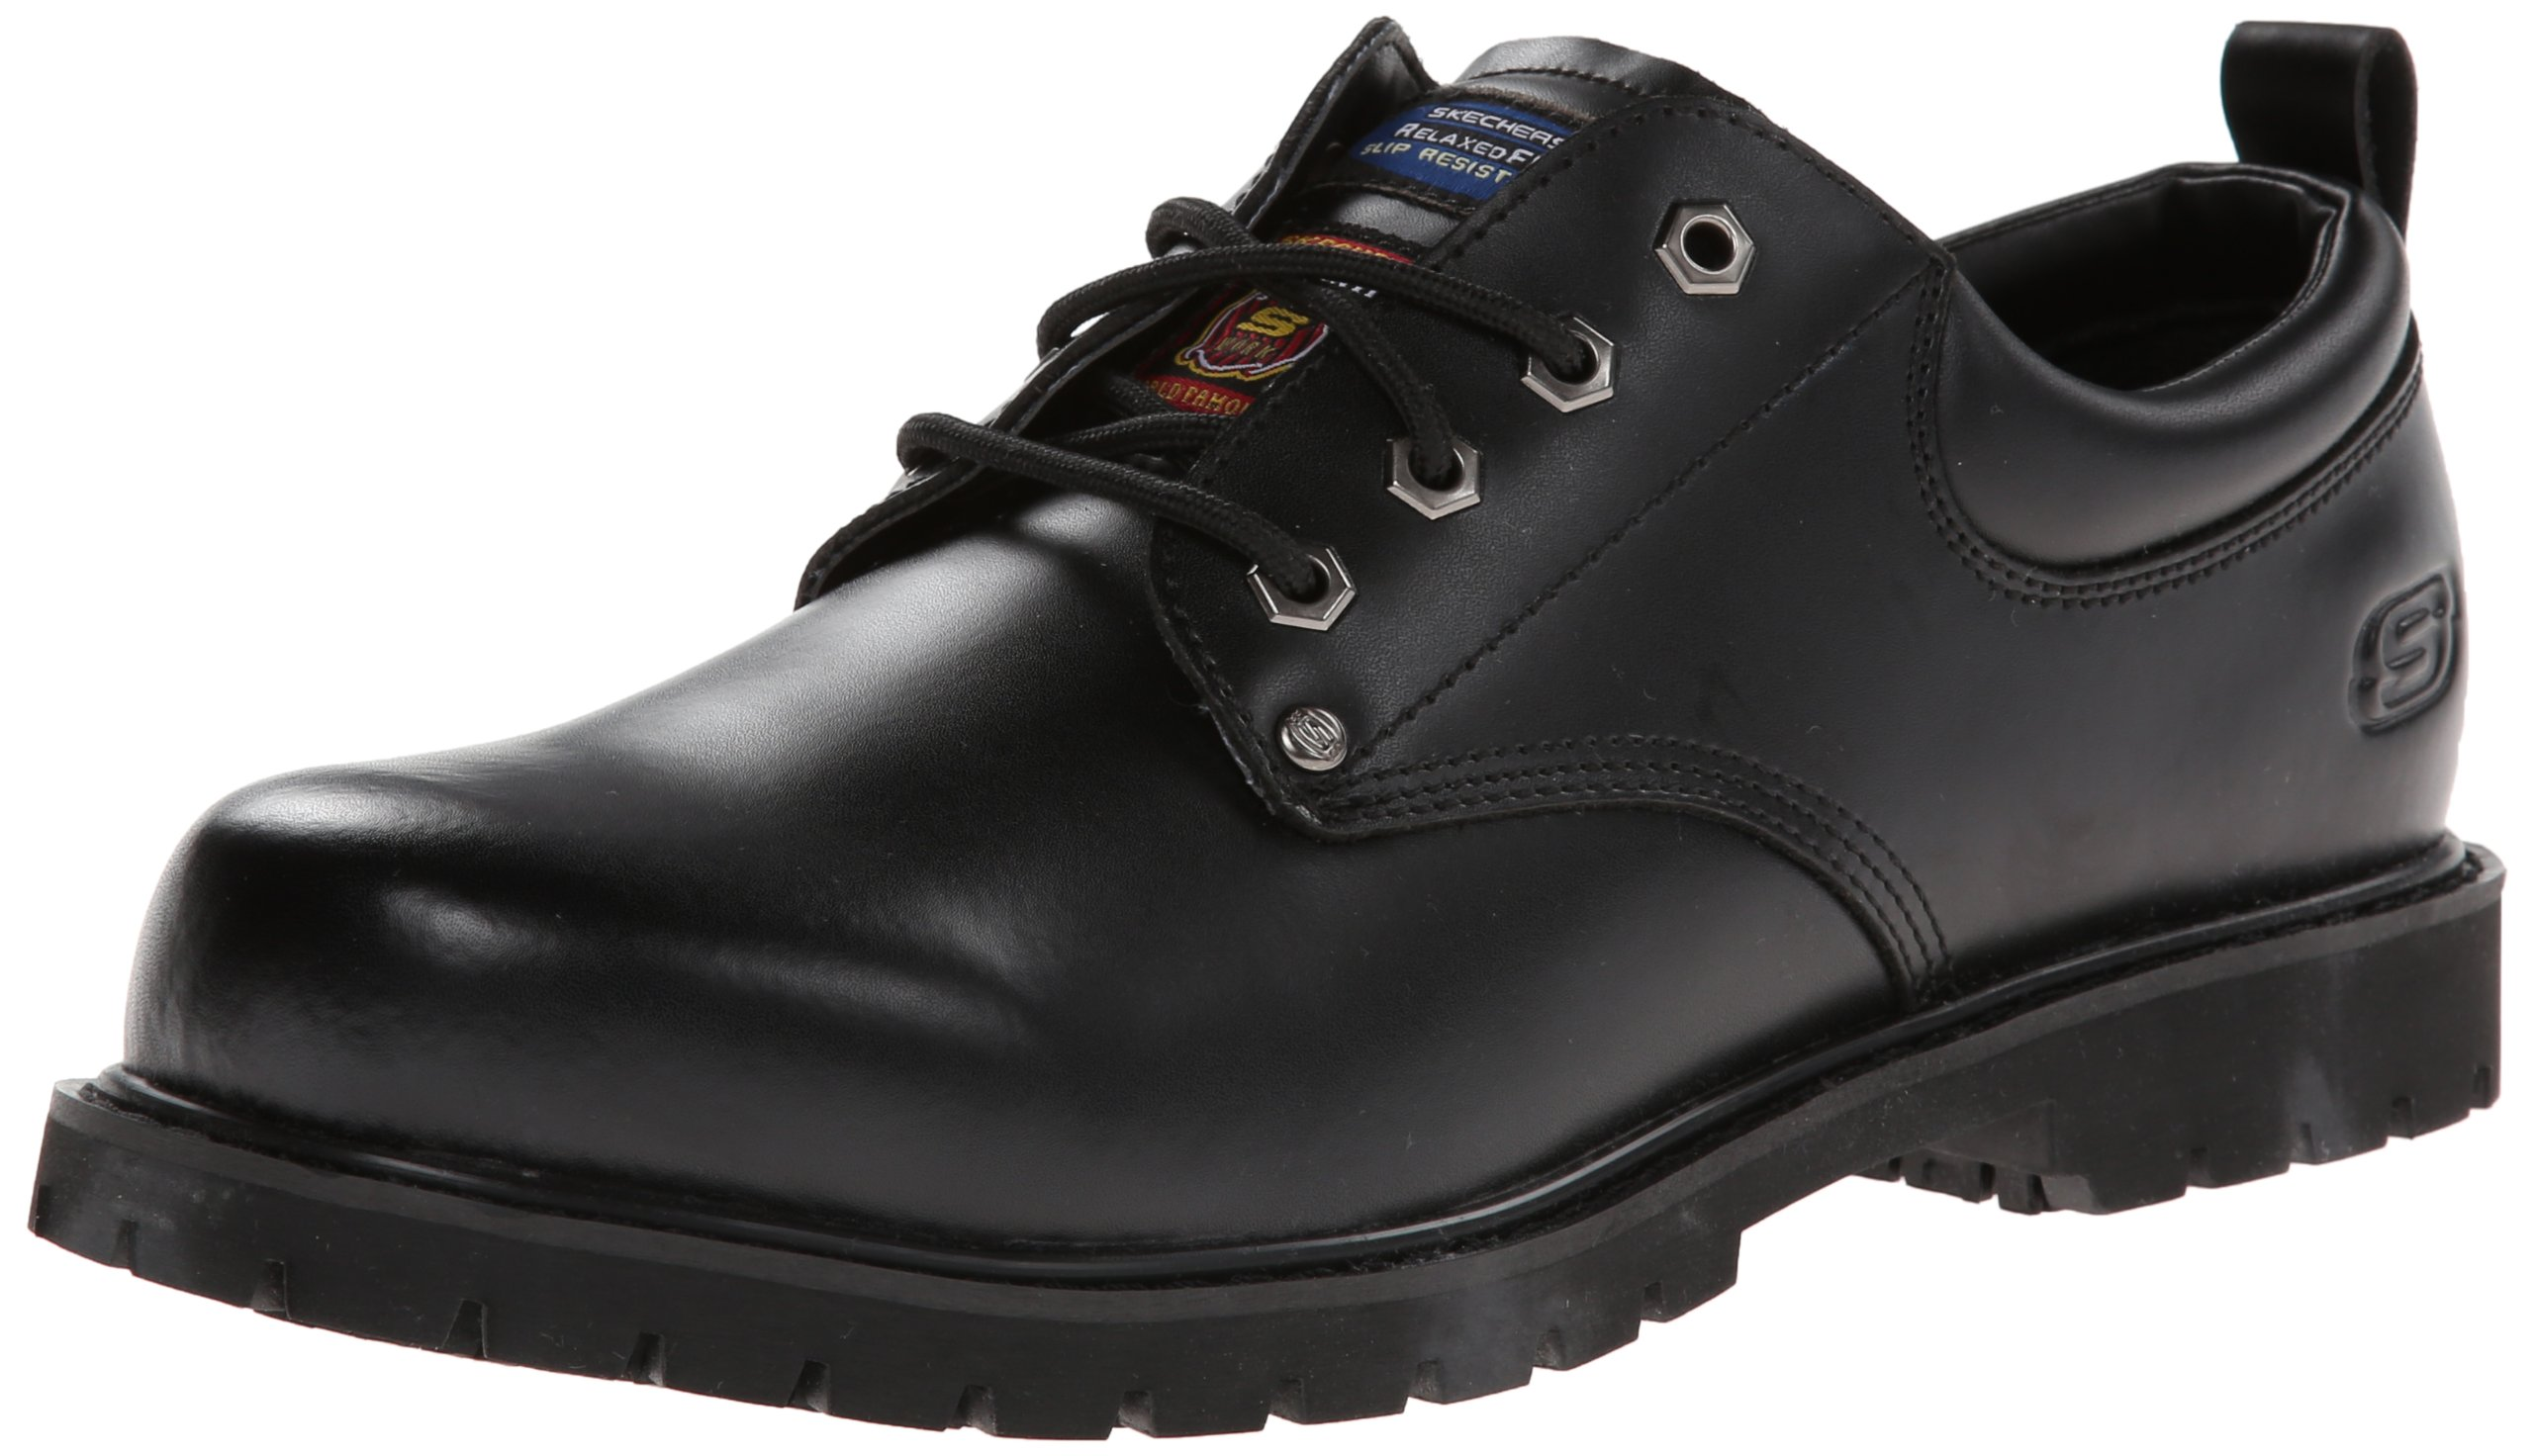 Skechers for Work Men's Cottonwood Fribble Slip Resistant Work Shoe,Black,12 M US